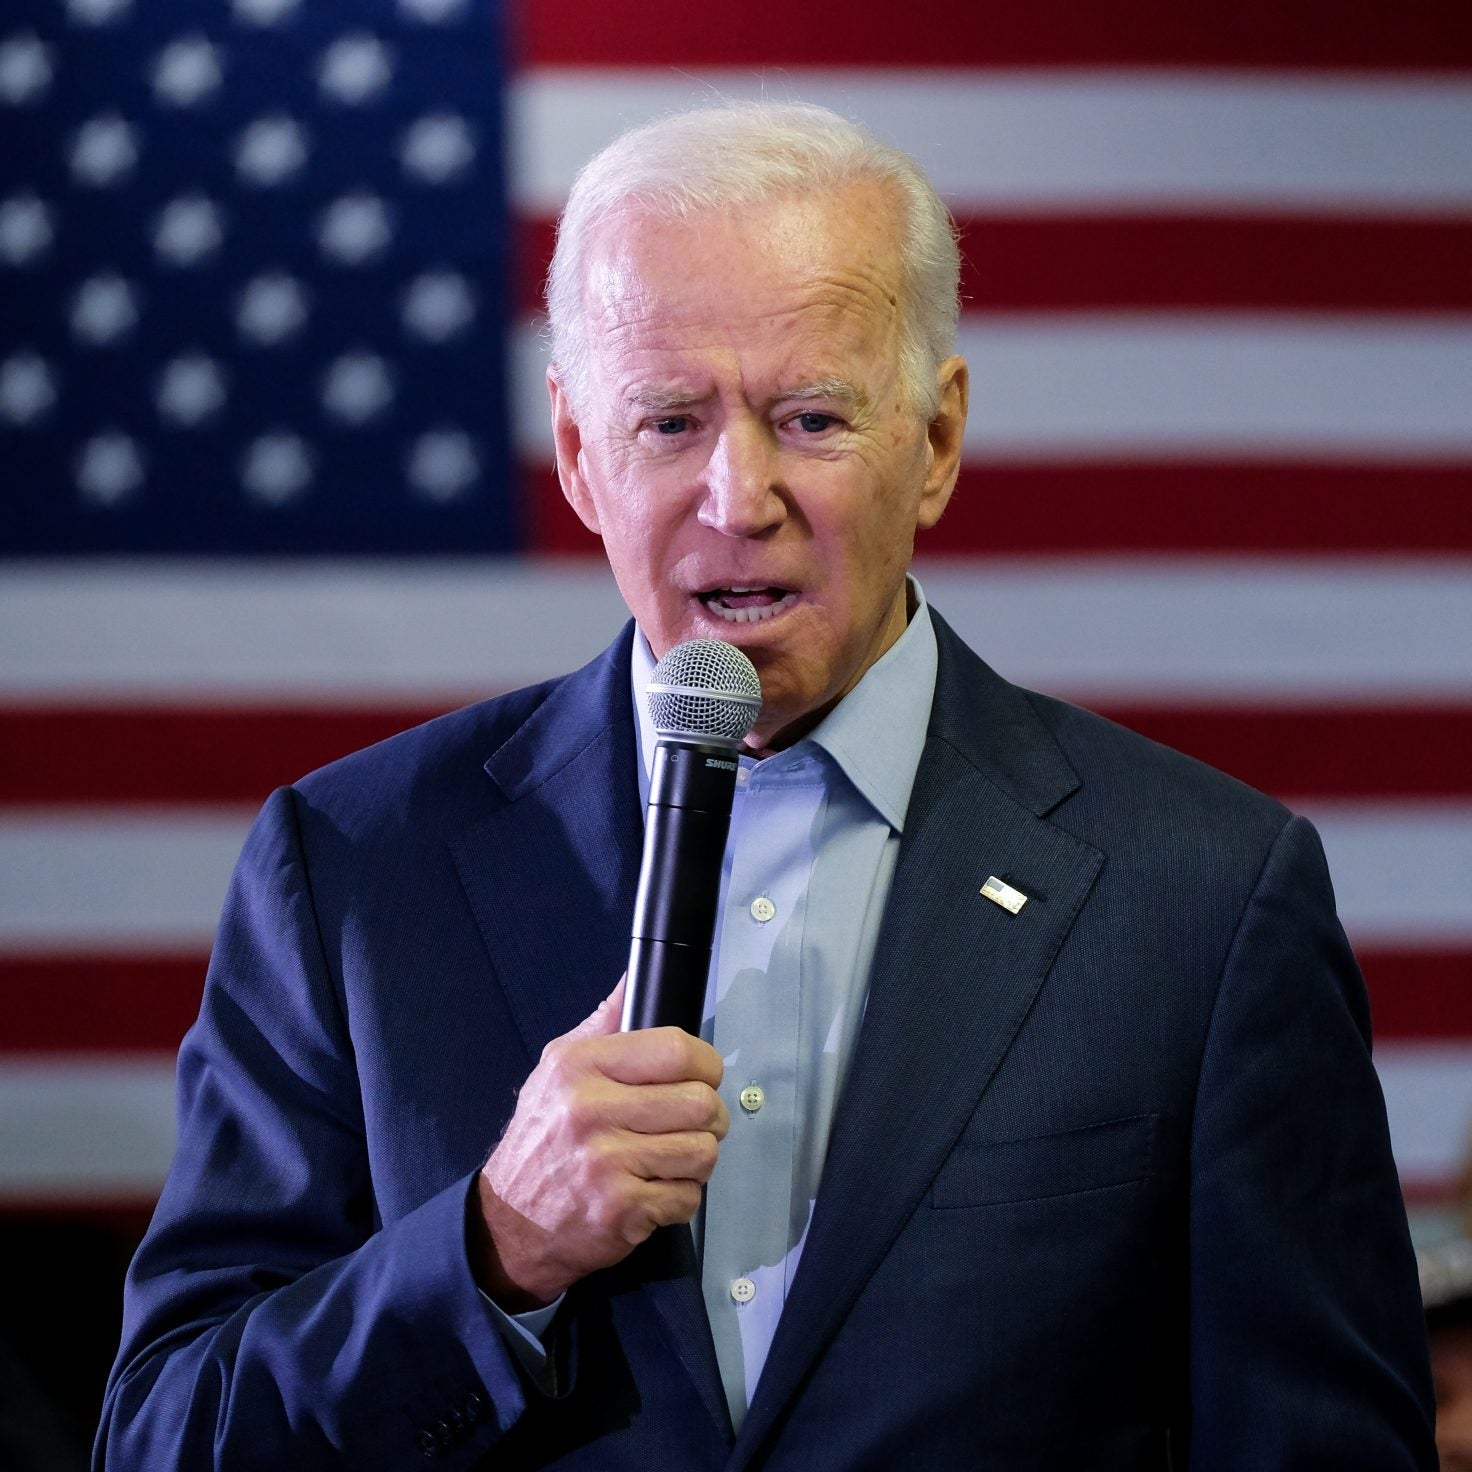 Joe Biden Calls NH Voter A 'Lying Dog-Faced Pony Soldier'